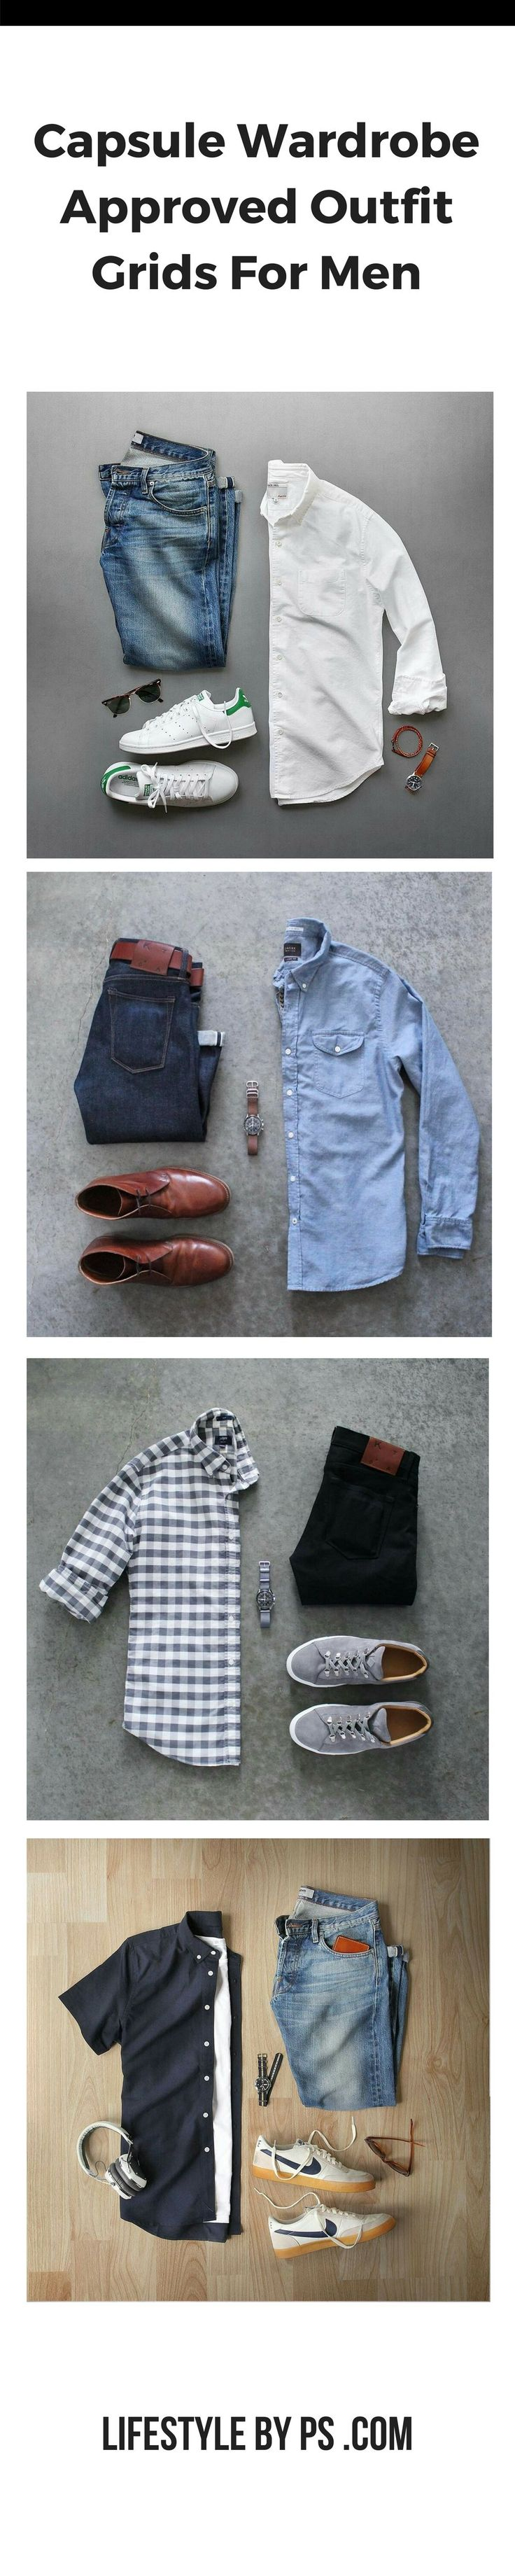 Capsule Wardrobe Outfit Grids For Men. #mens #fashion